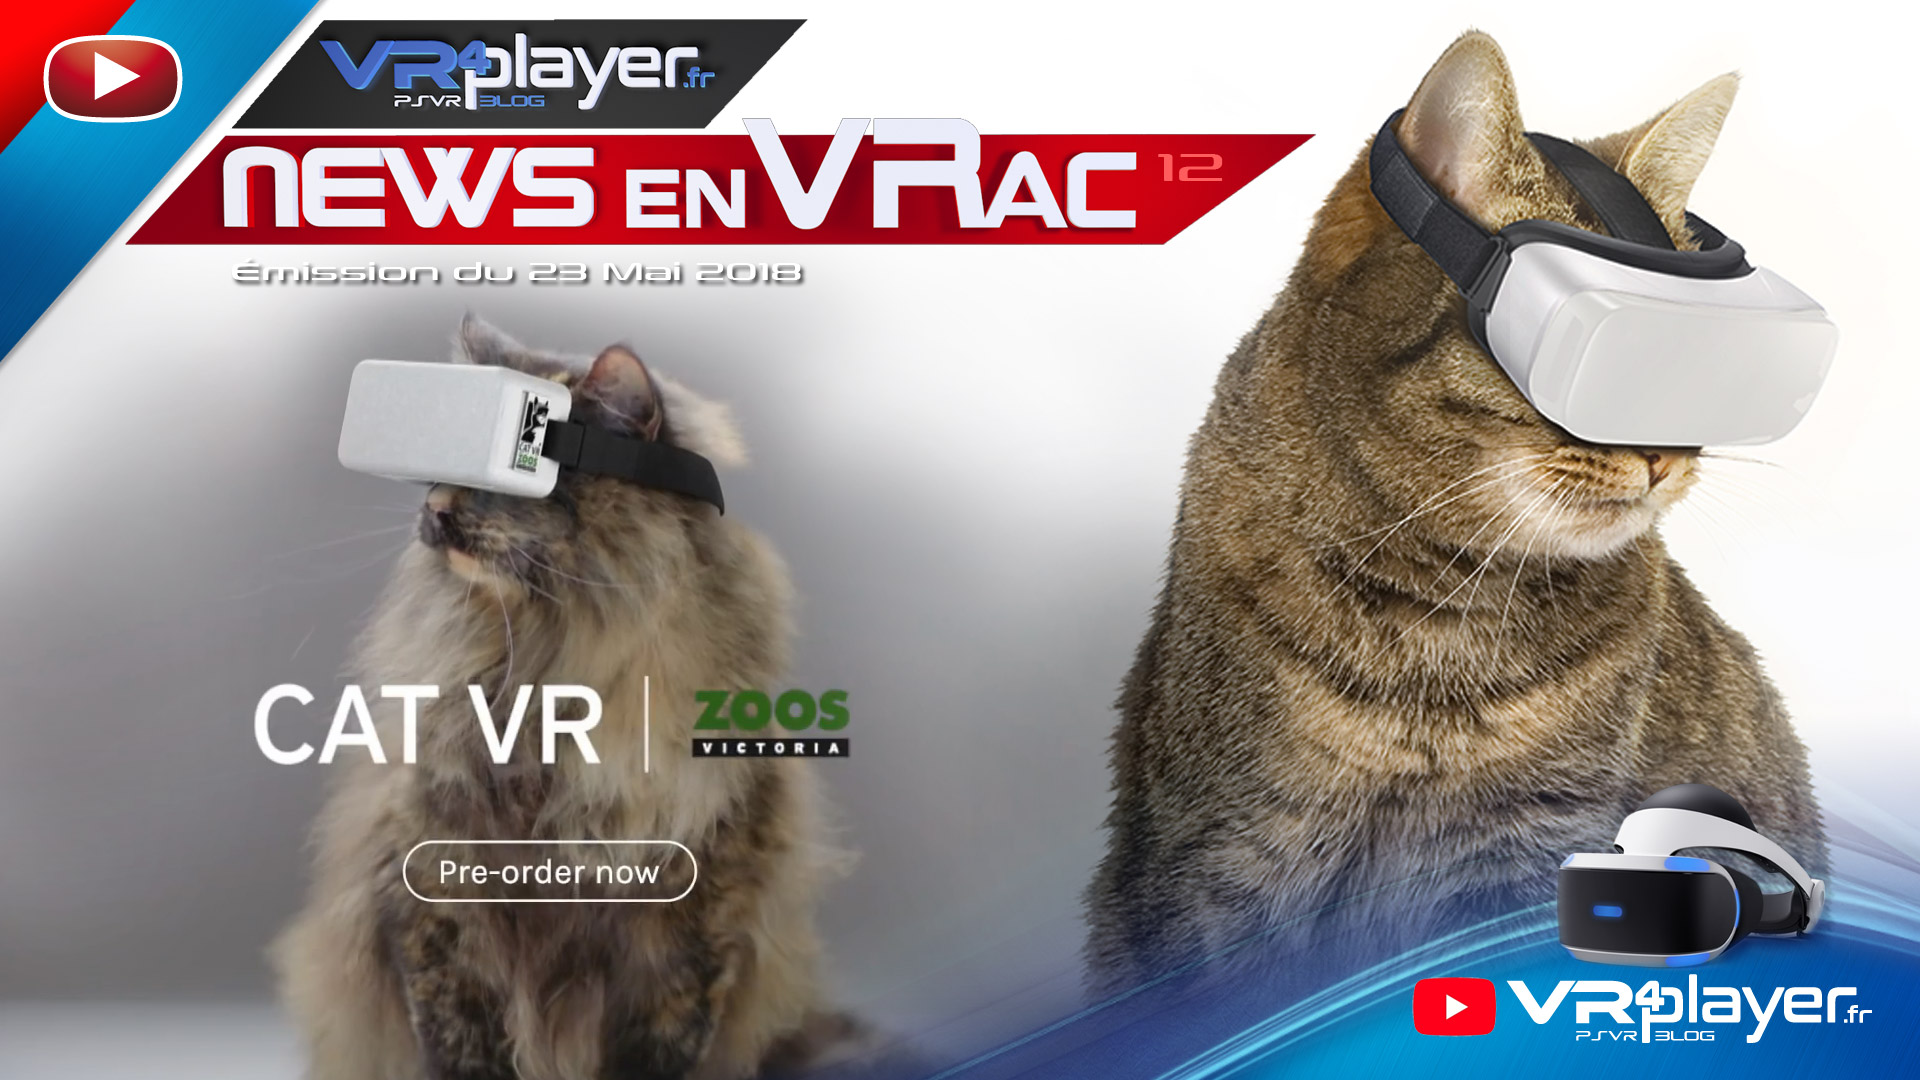 PlayStation VR Les News en VRac VR4player Émission n°12